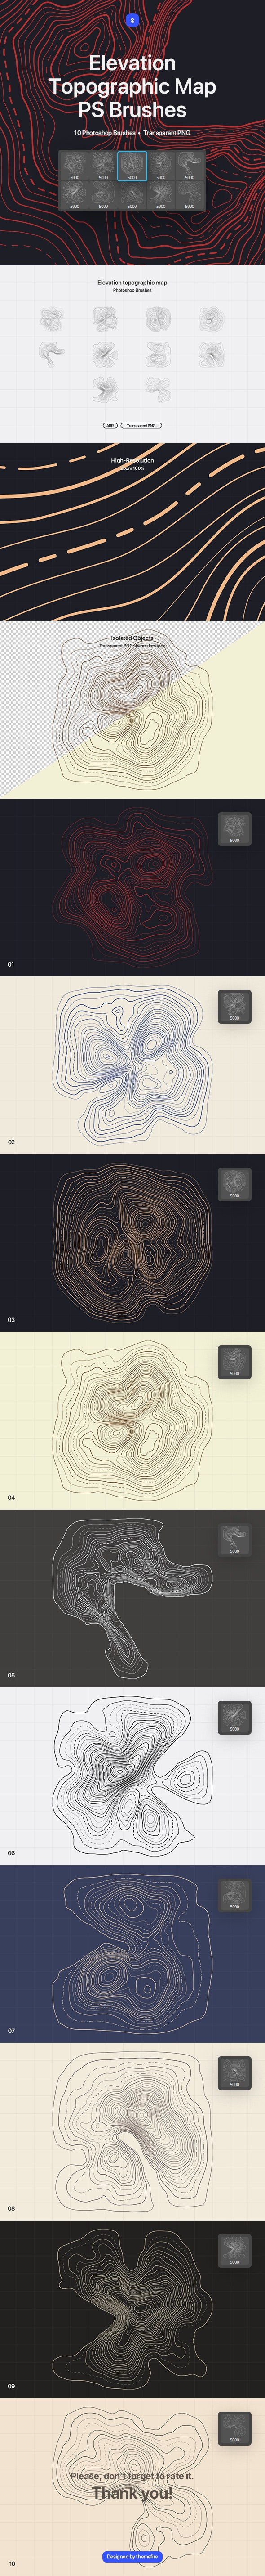 Topographic Map Photoshop Brushes - Abstract Brushes